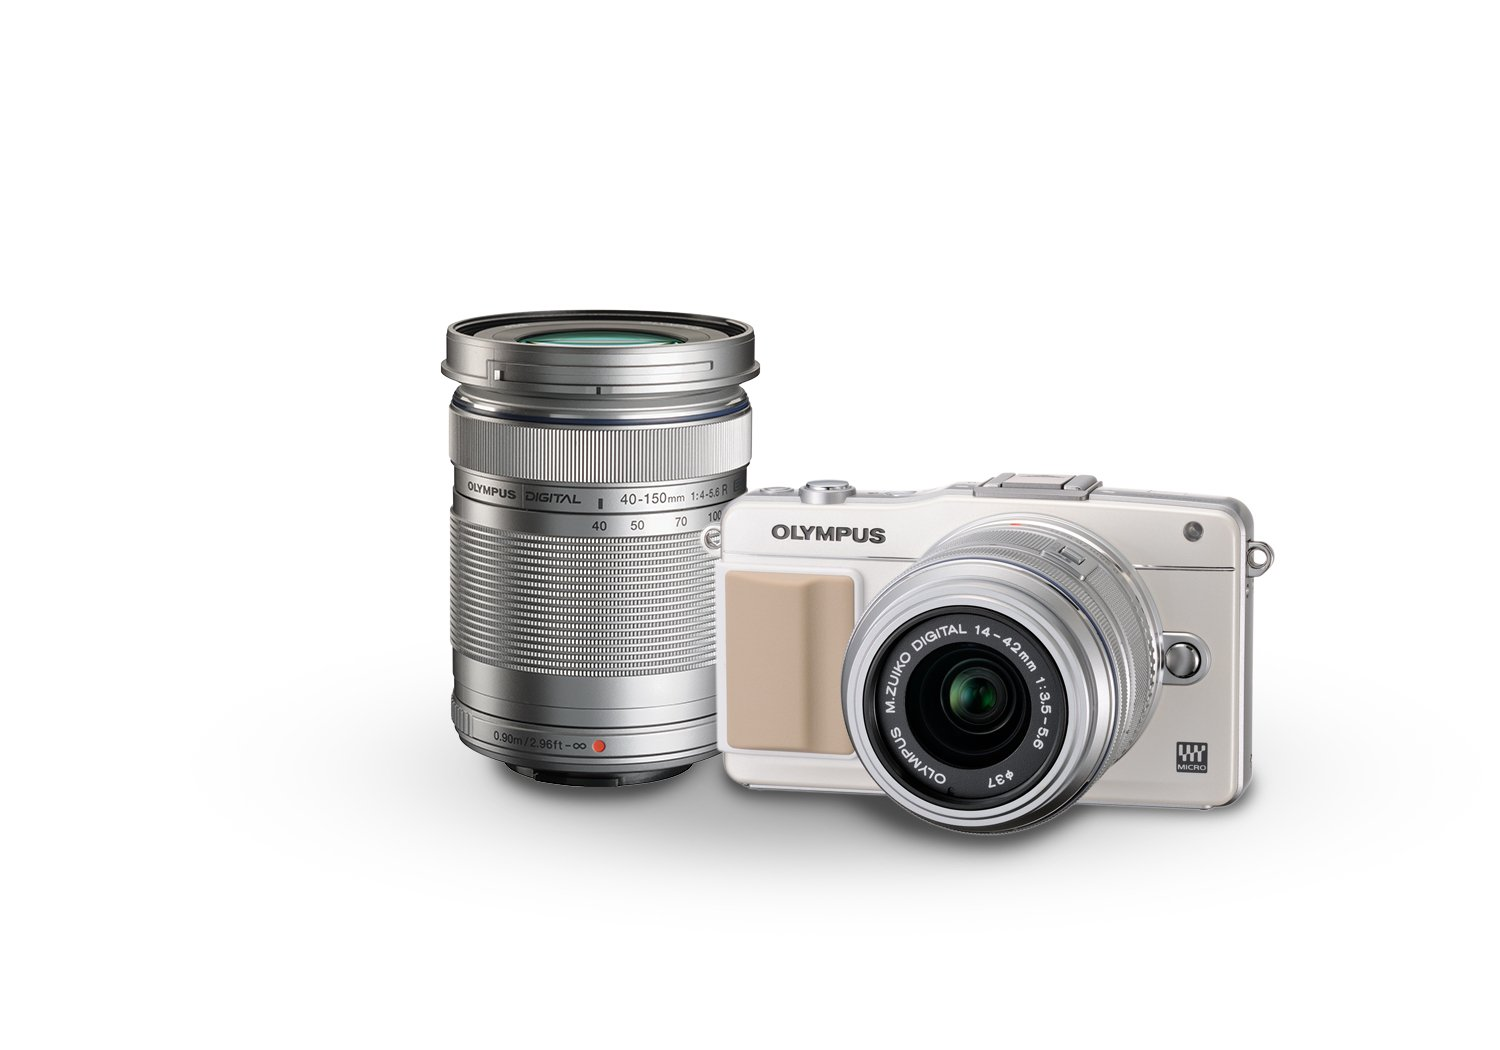 Top 10 Best Mirrorless Camera (2020 Reviews & Buying Guide) 6